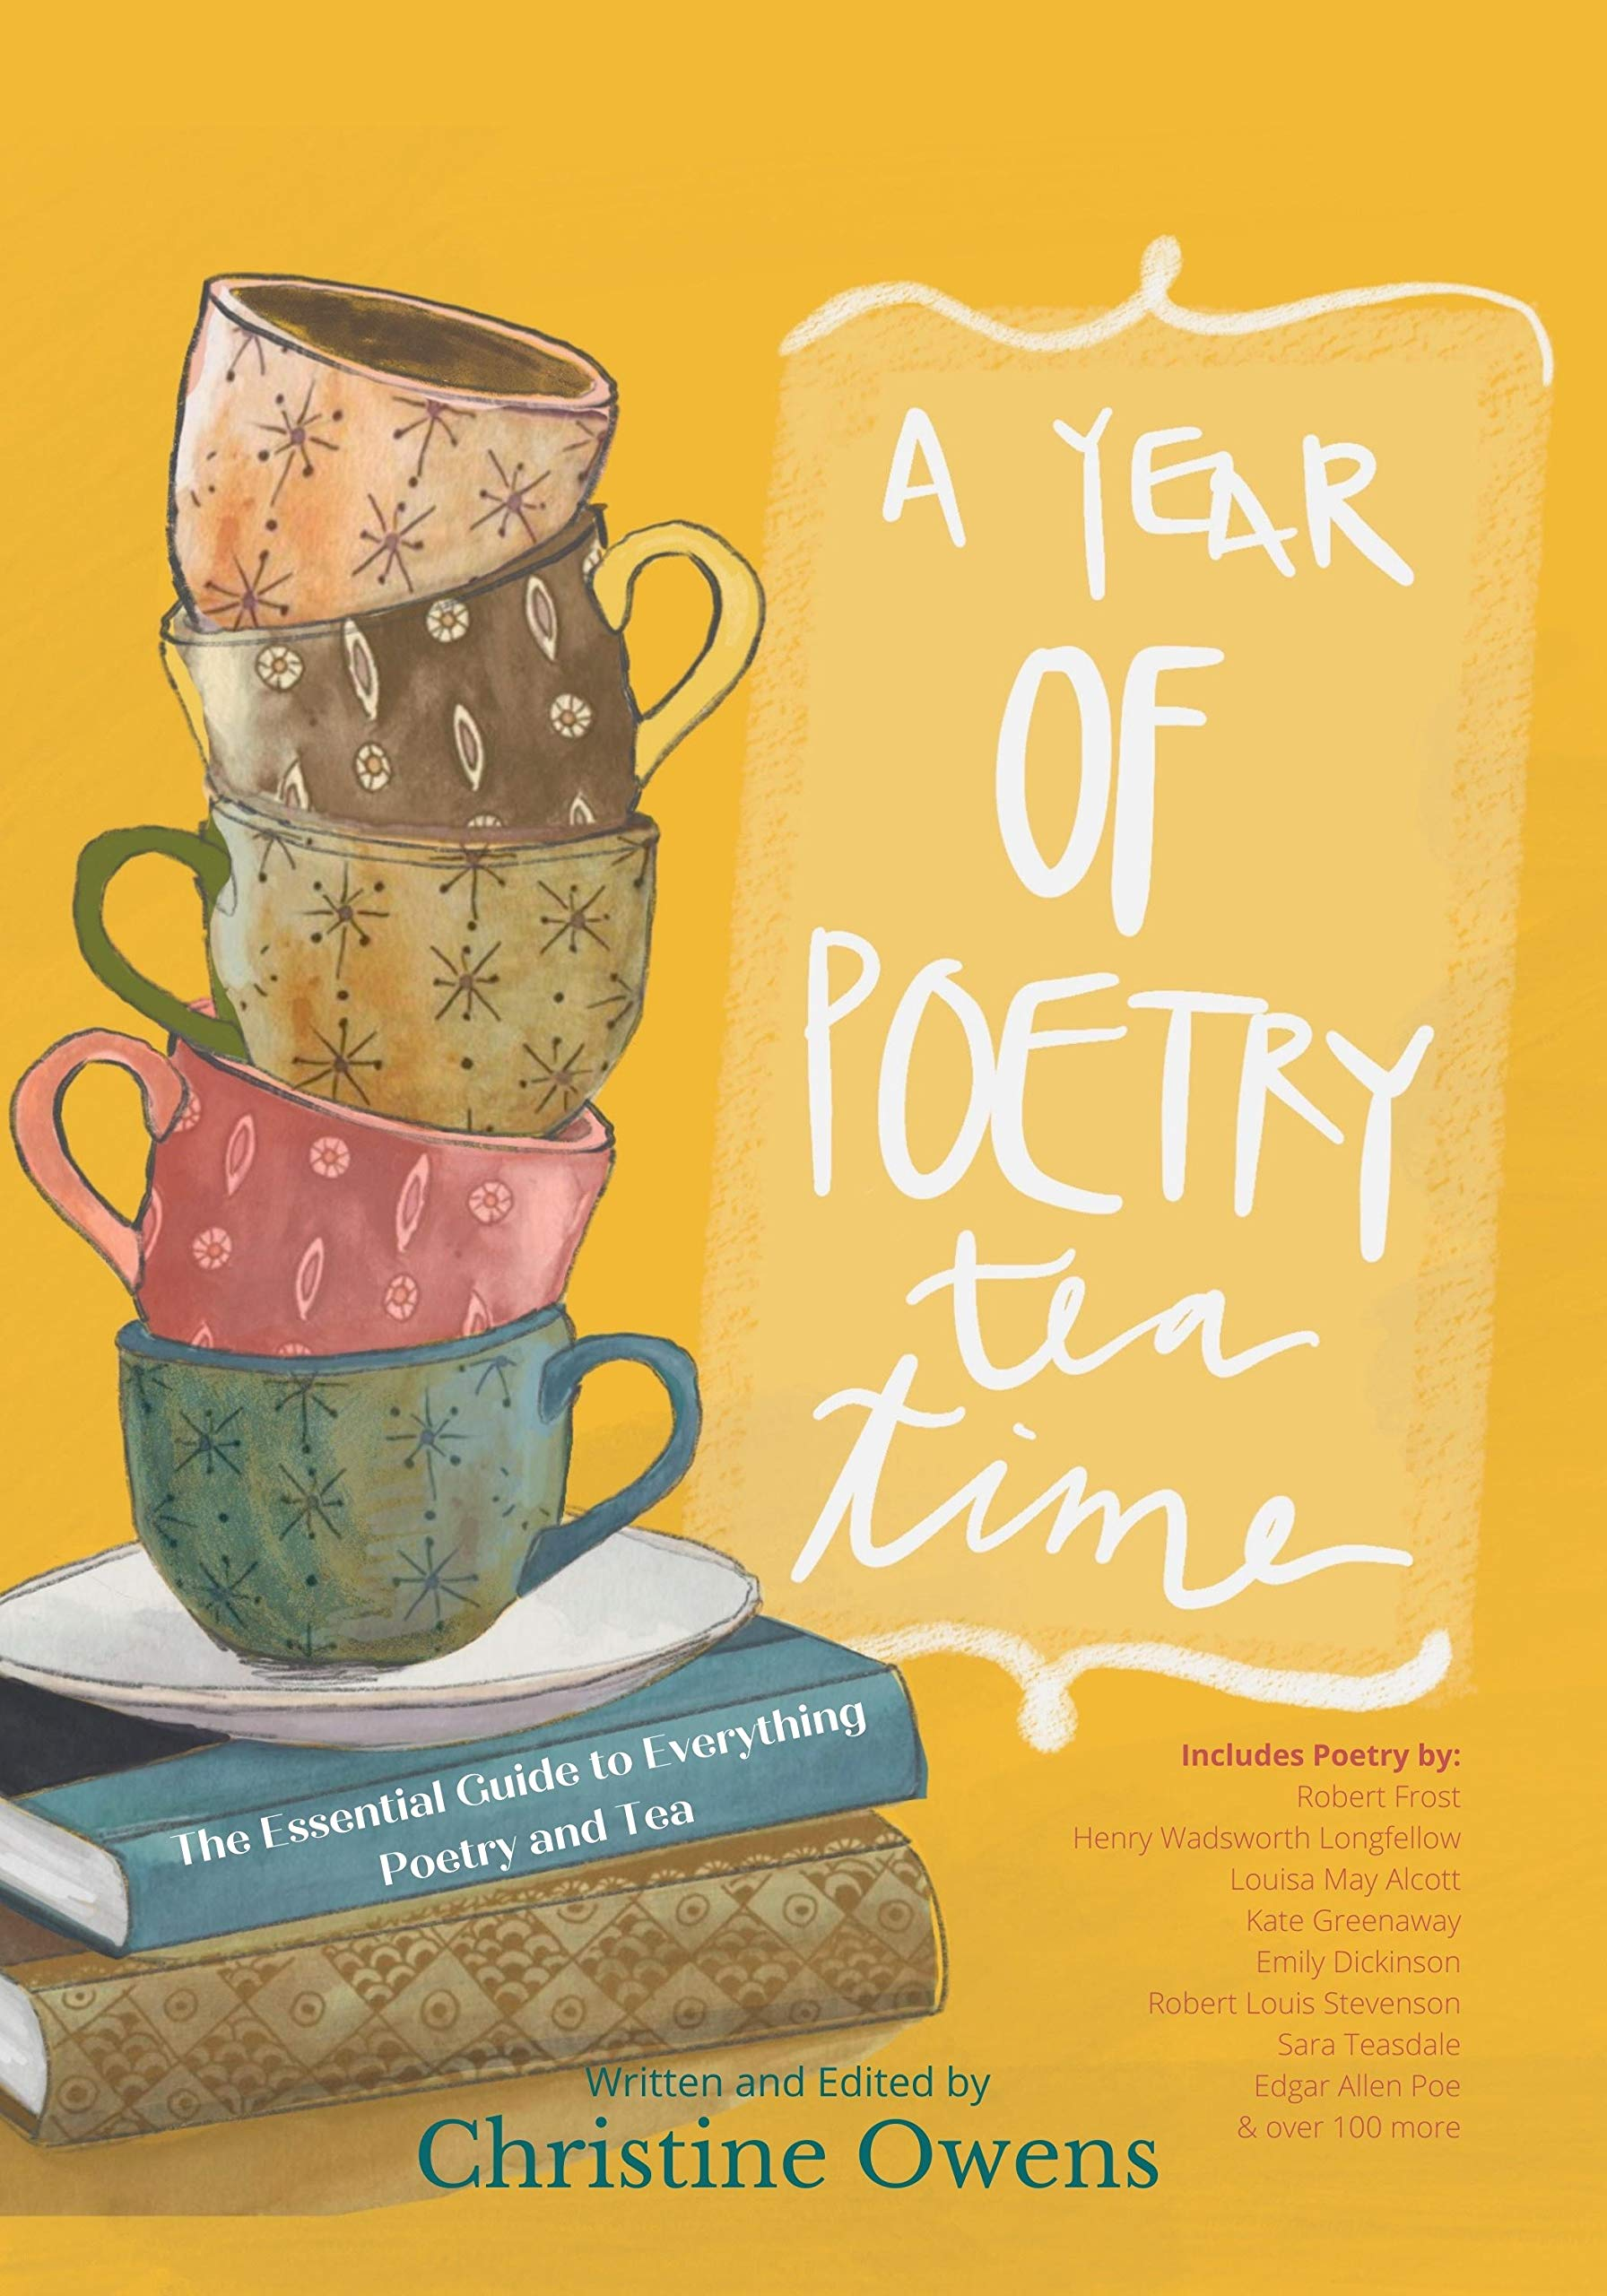 A Year of Poetry Tea Time: The Essential Guide to Everything Poetry and Tea